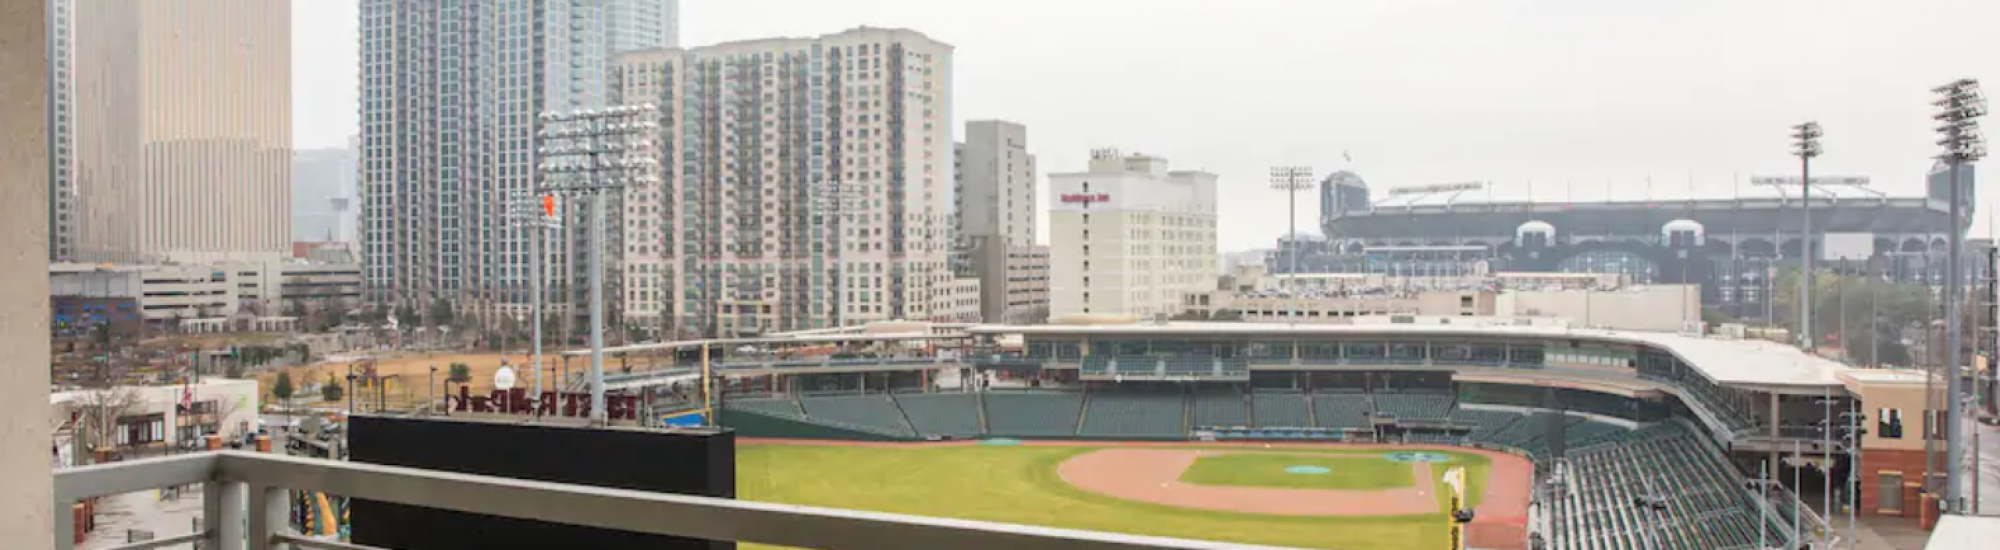 BB-T-Ballpark-View-From-Frontdesk